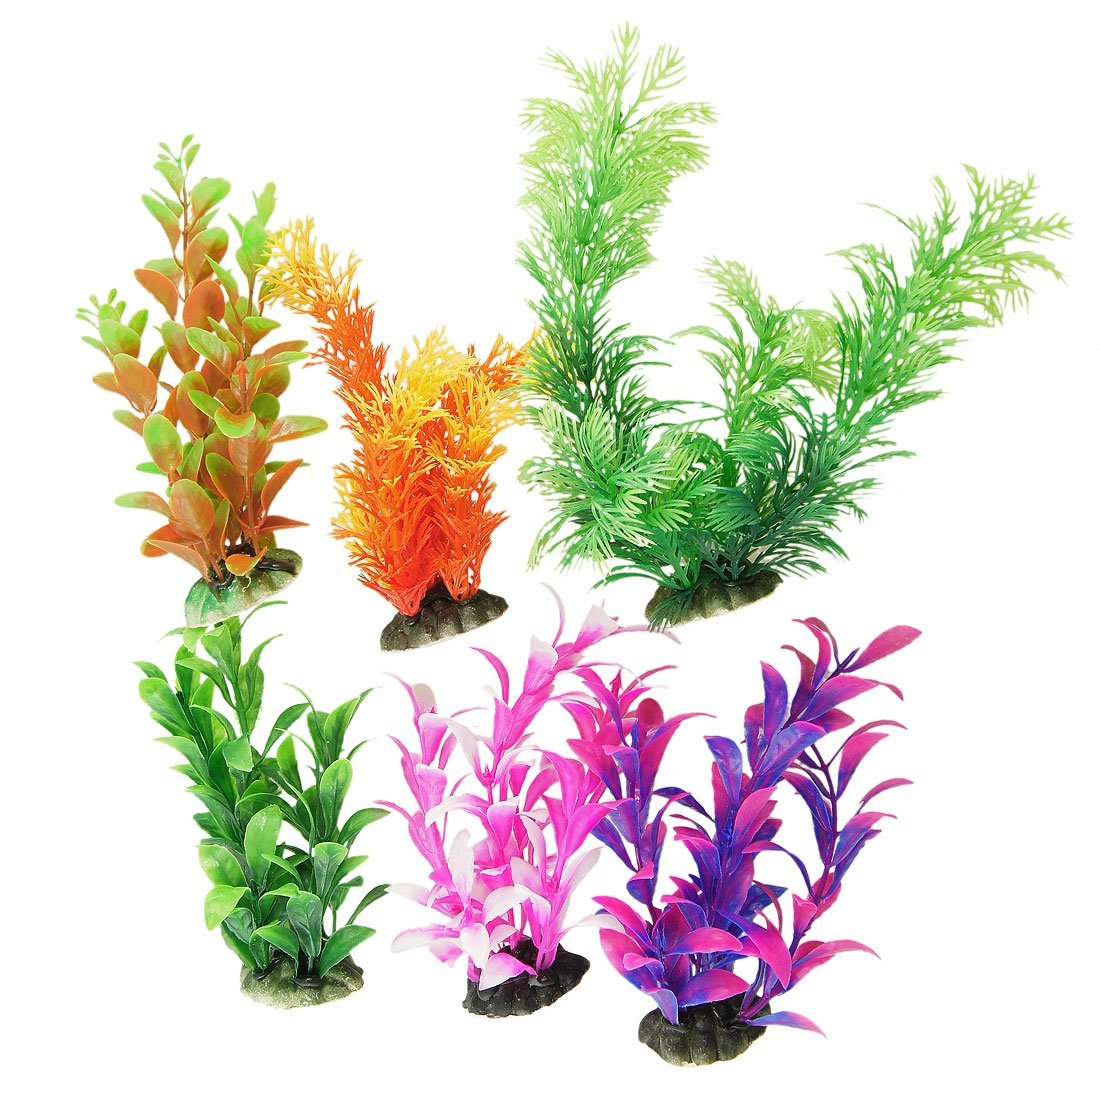 Aquarium fish tank plants - New 6 Pcs Assorted Colorful Fish Tank Aquarium Plants Aquarium Decoration W Ceramic Base China